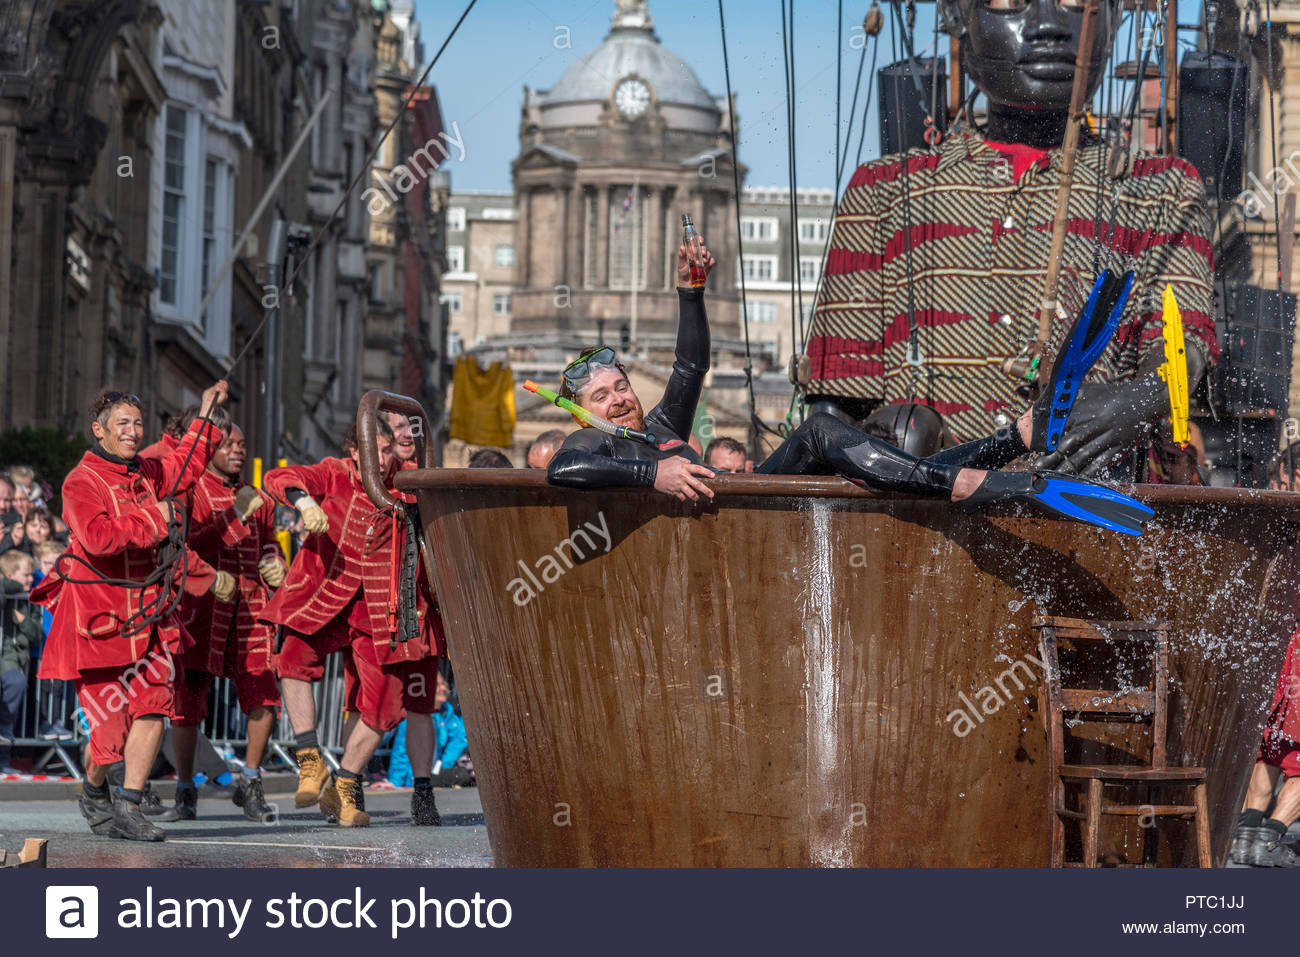 Royal De Luxe Giants visit Liverpool for the last time. - Stock Image